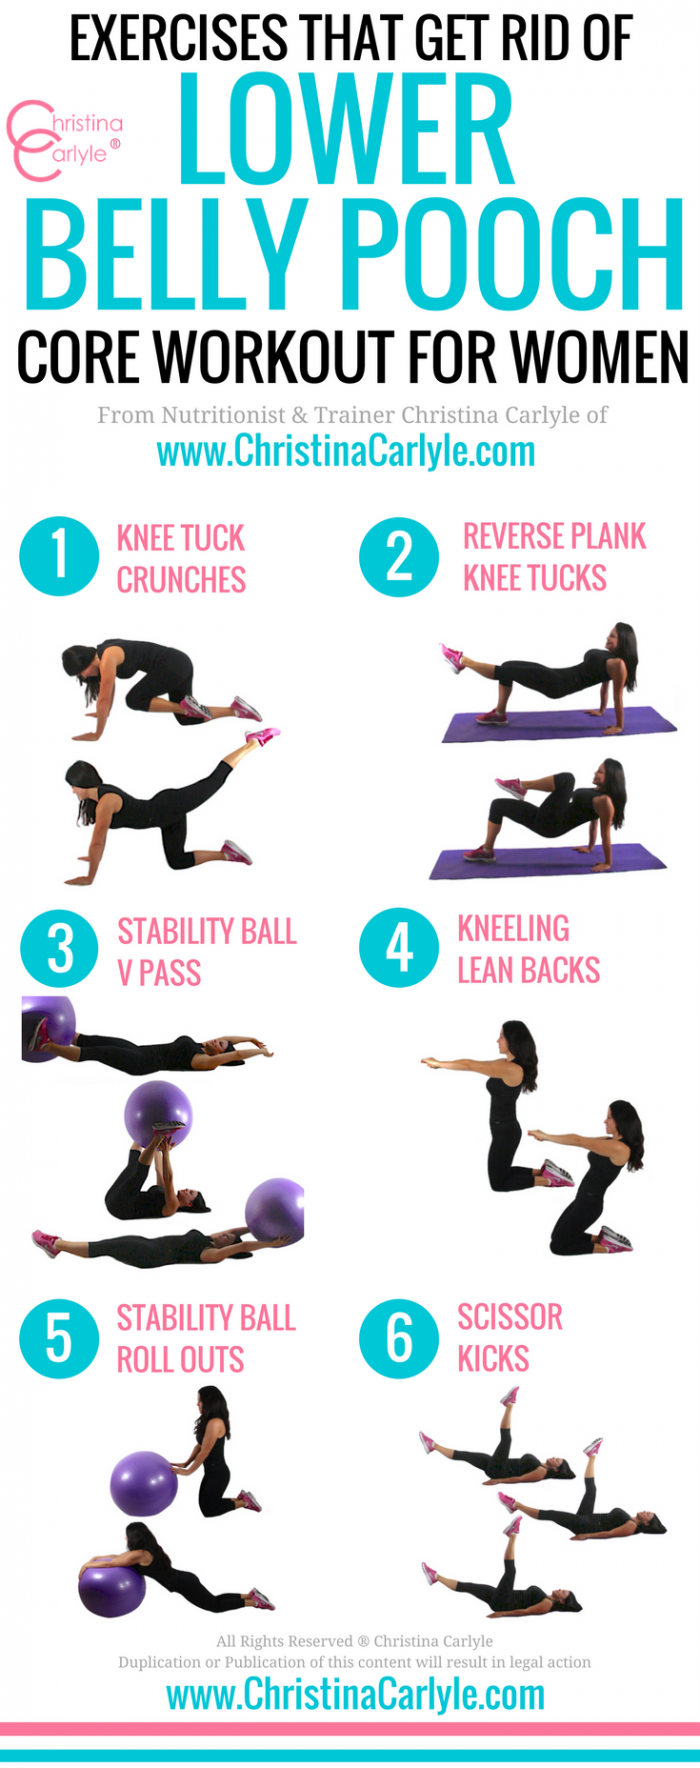 Workout to get rid of lower belly pooch